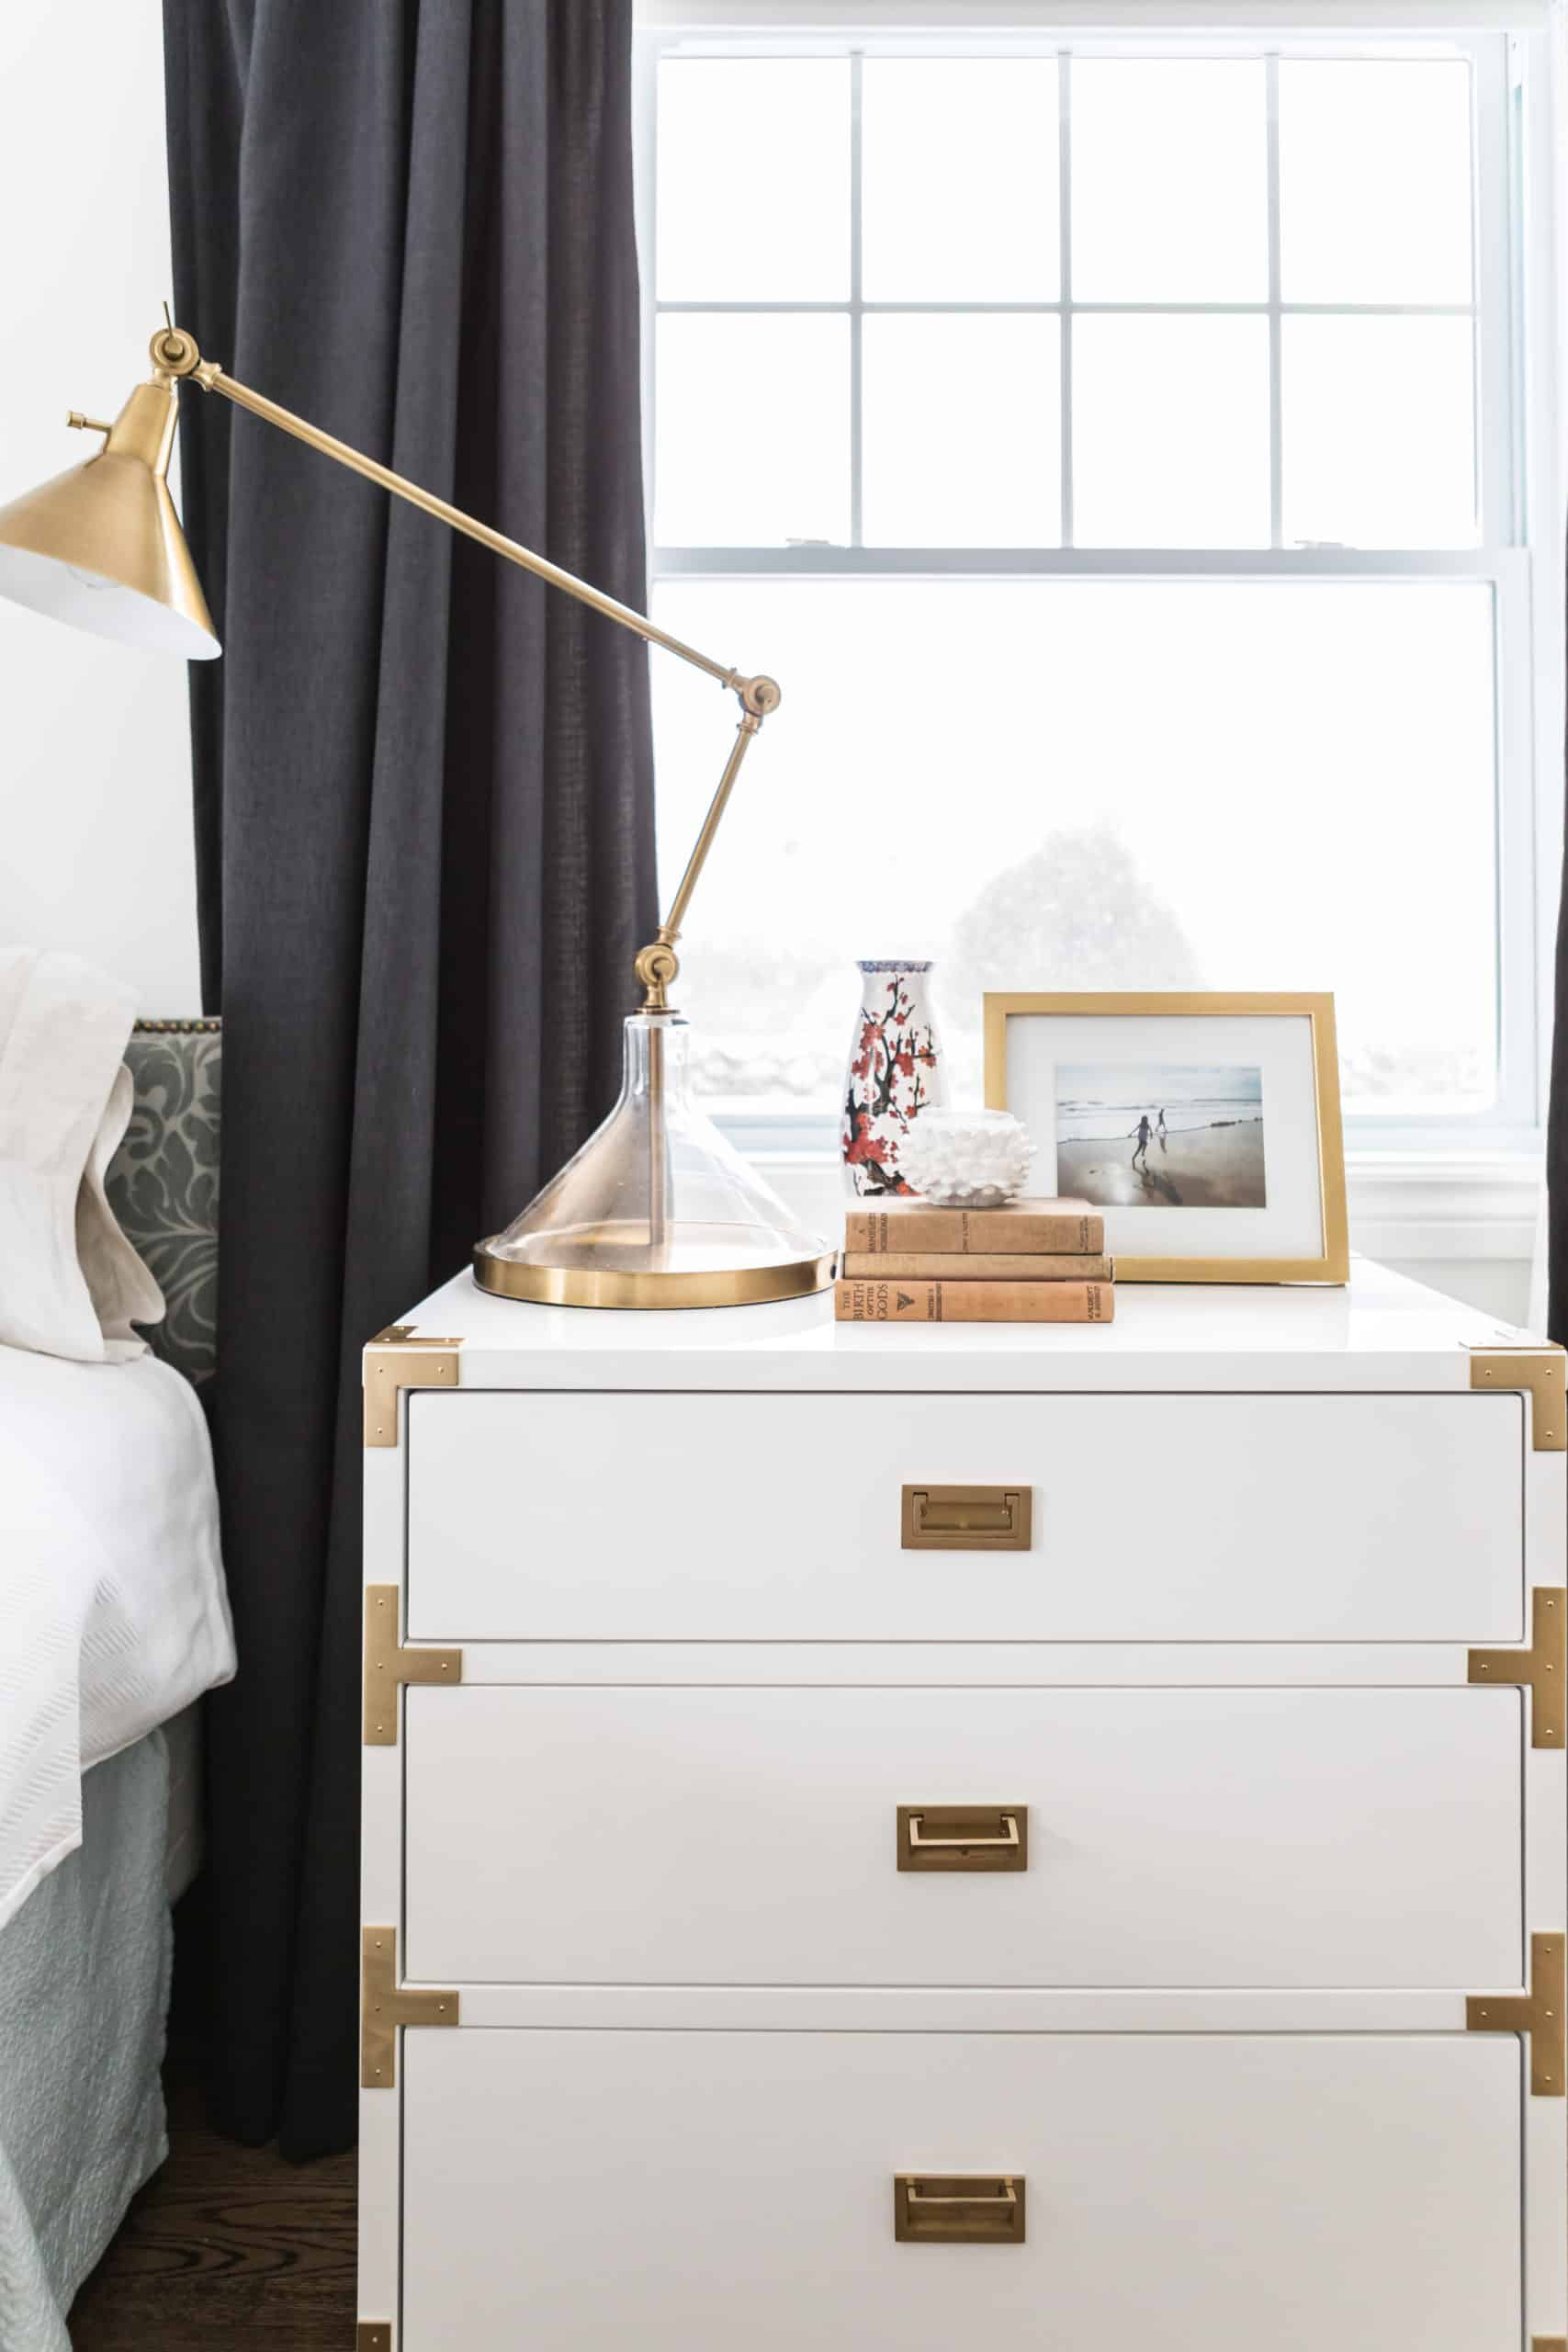 White bedside table with a tall work lamp on it